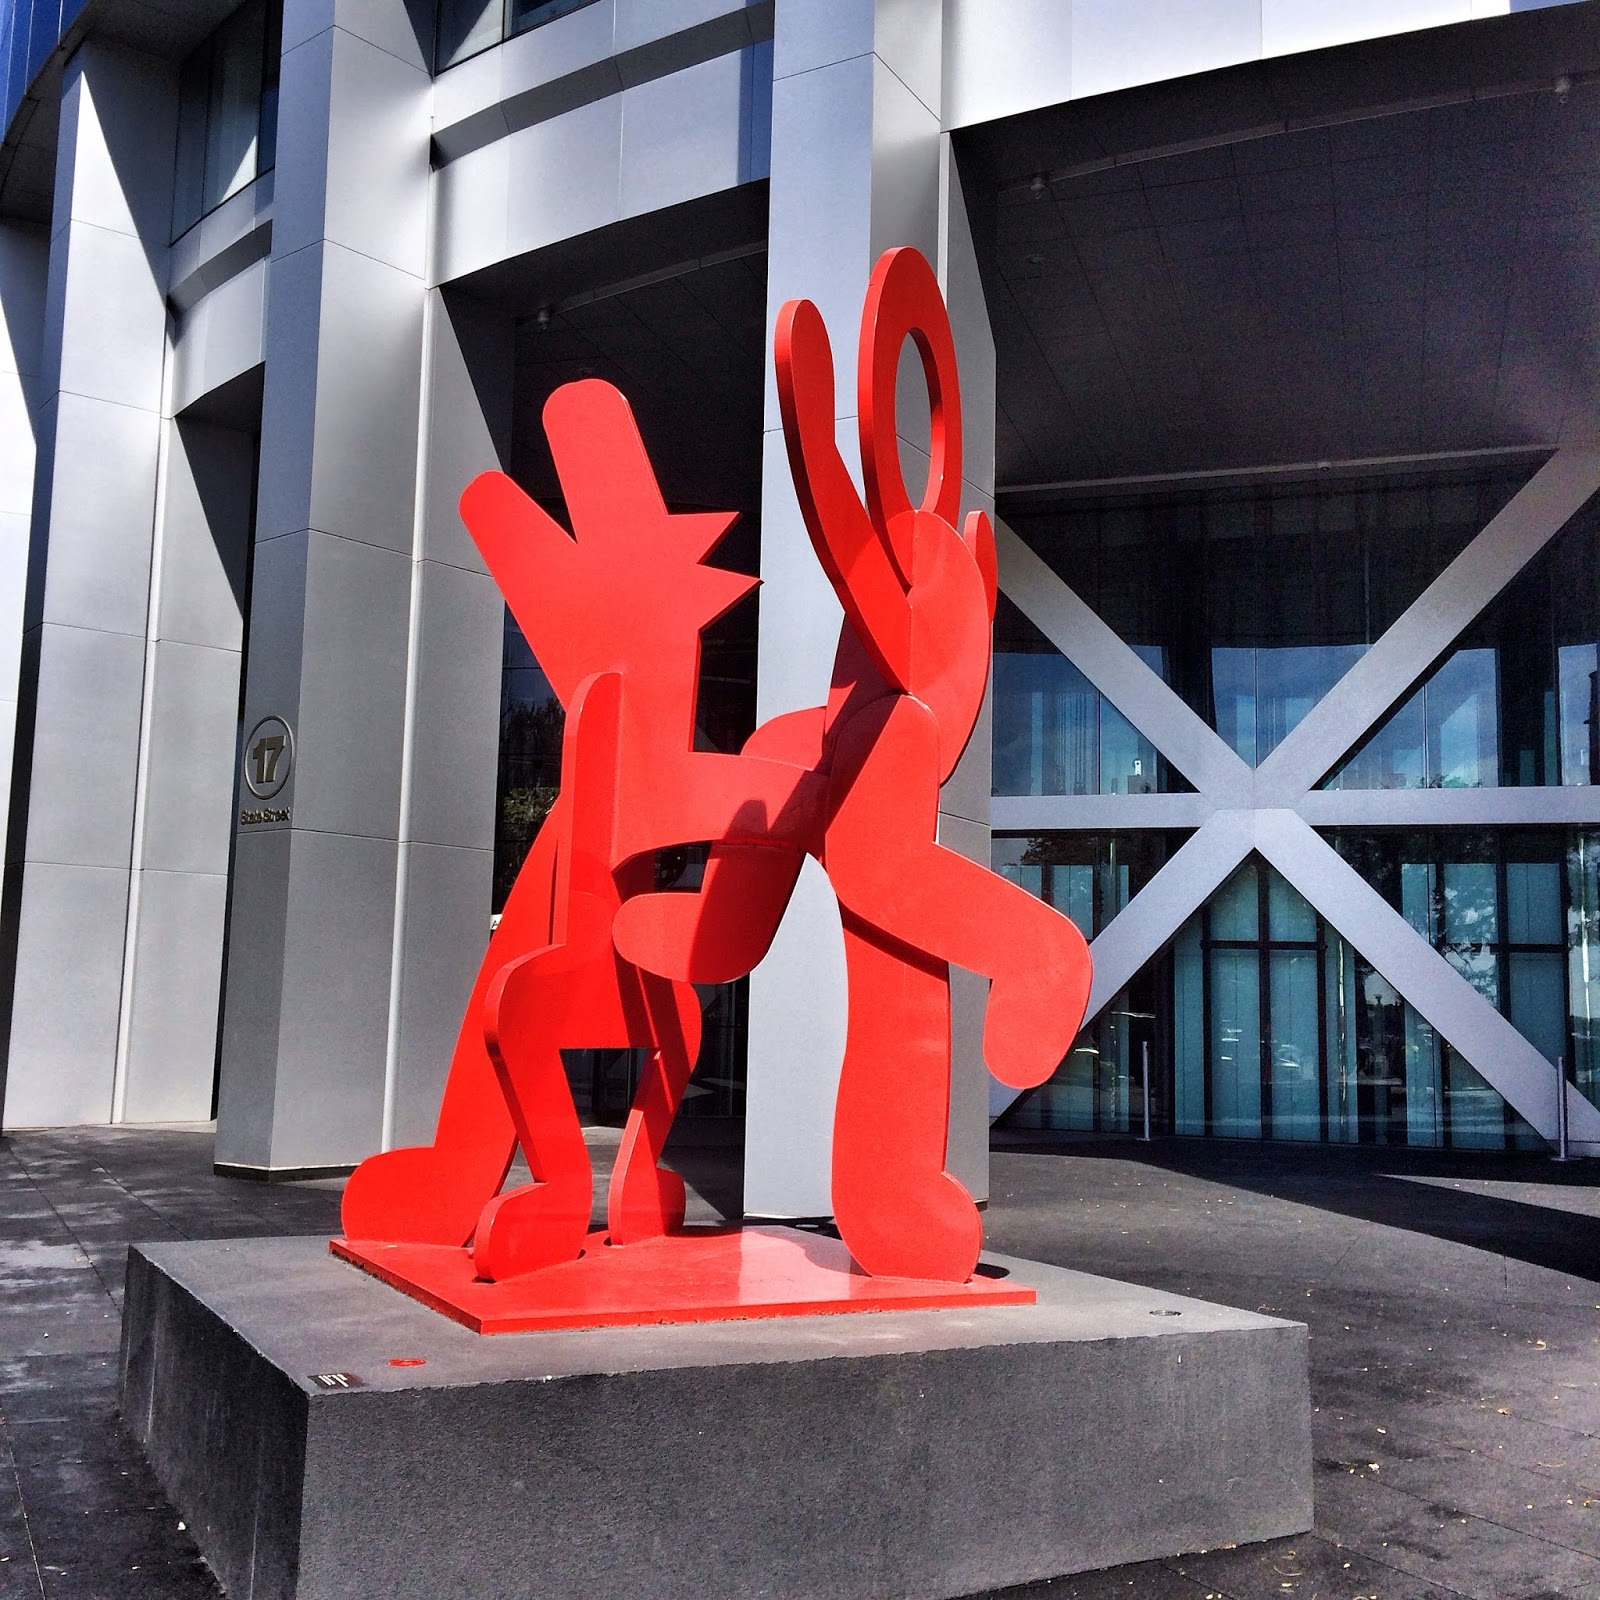 Dancing in the Streets, #keithharing #art #nyc #sculpture 2014